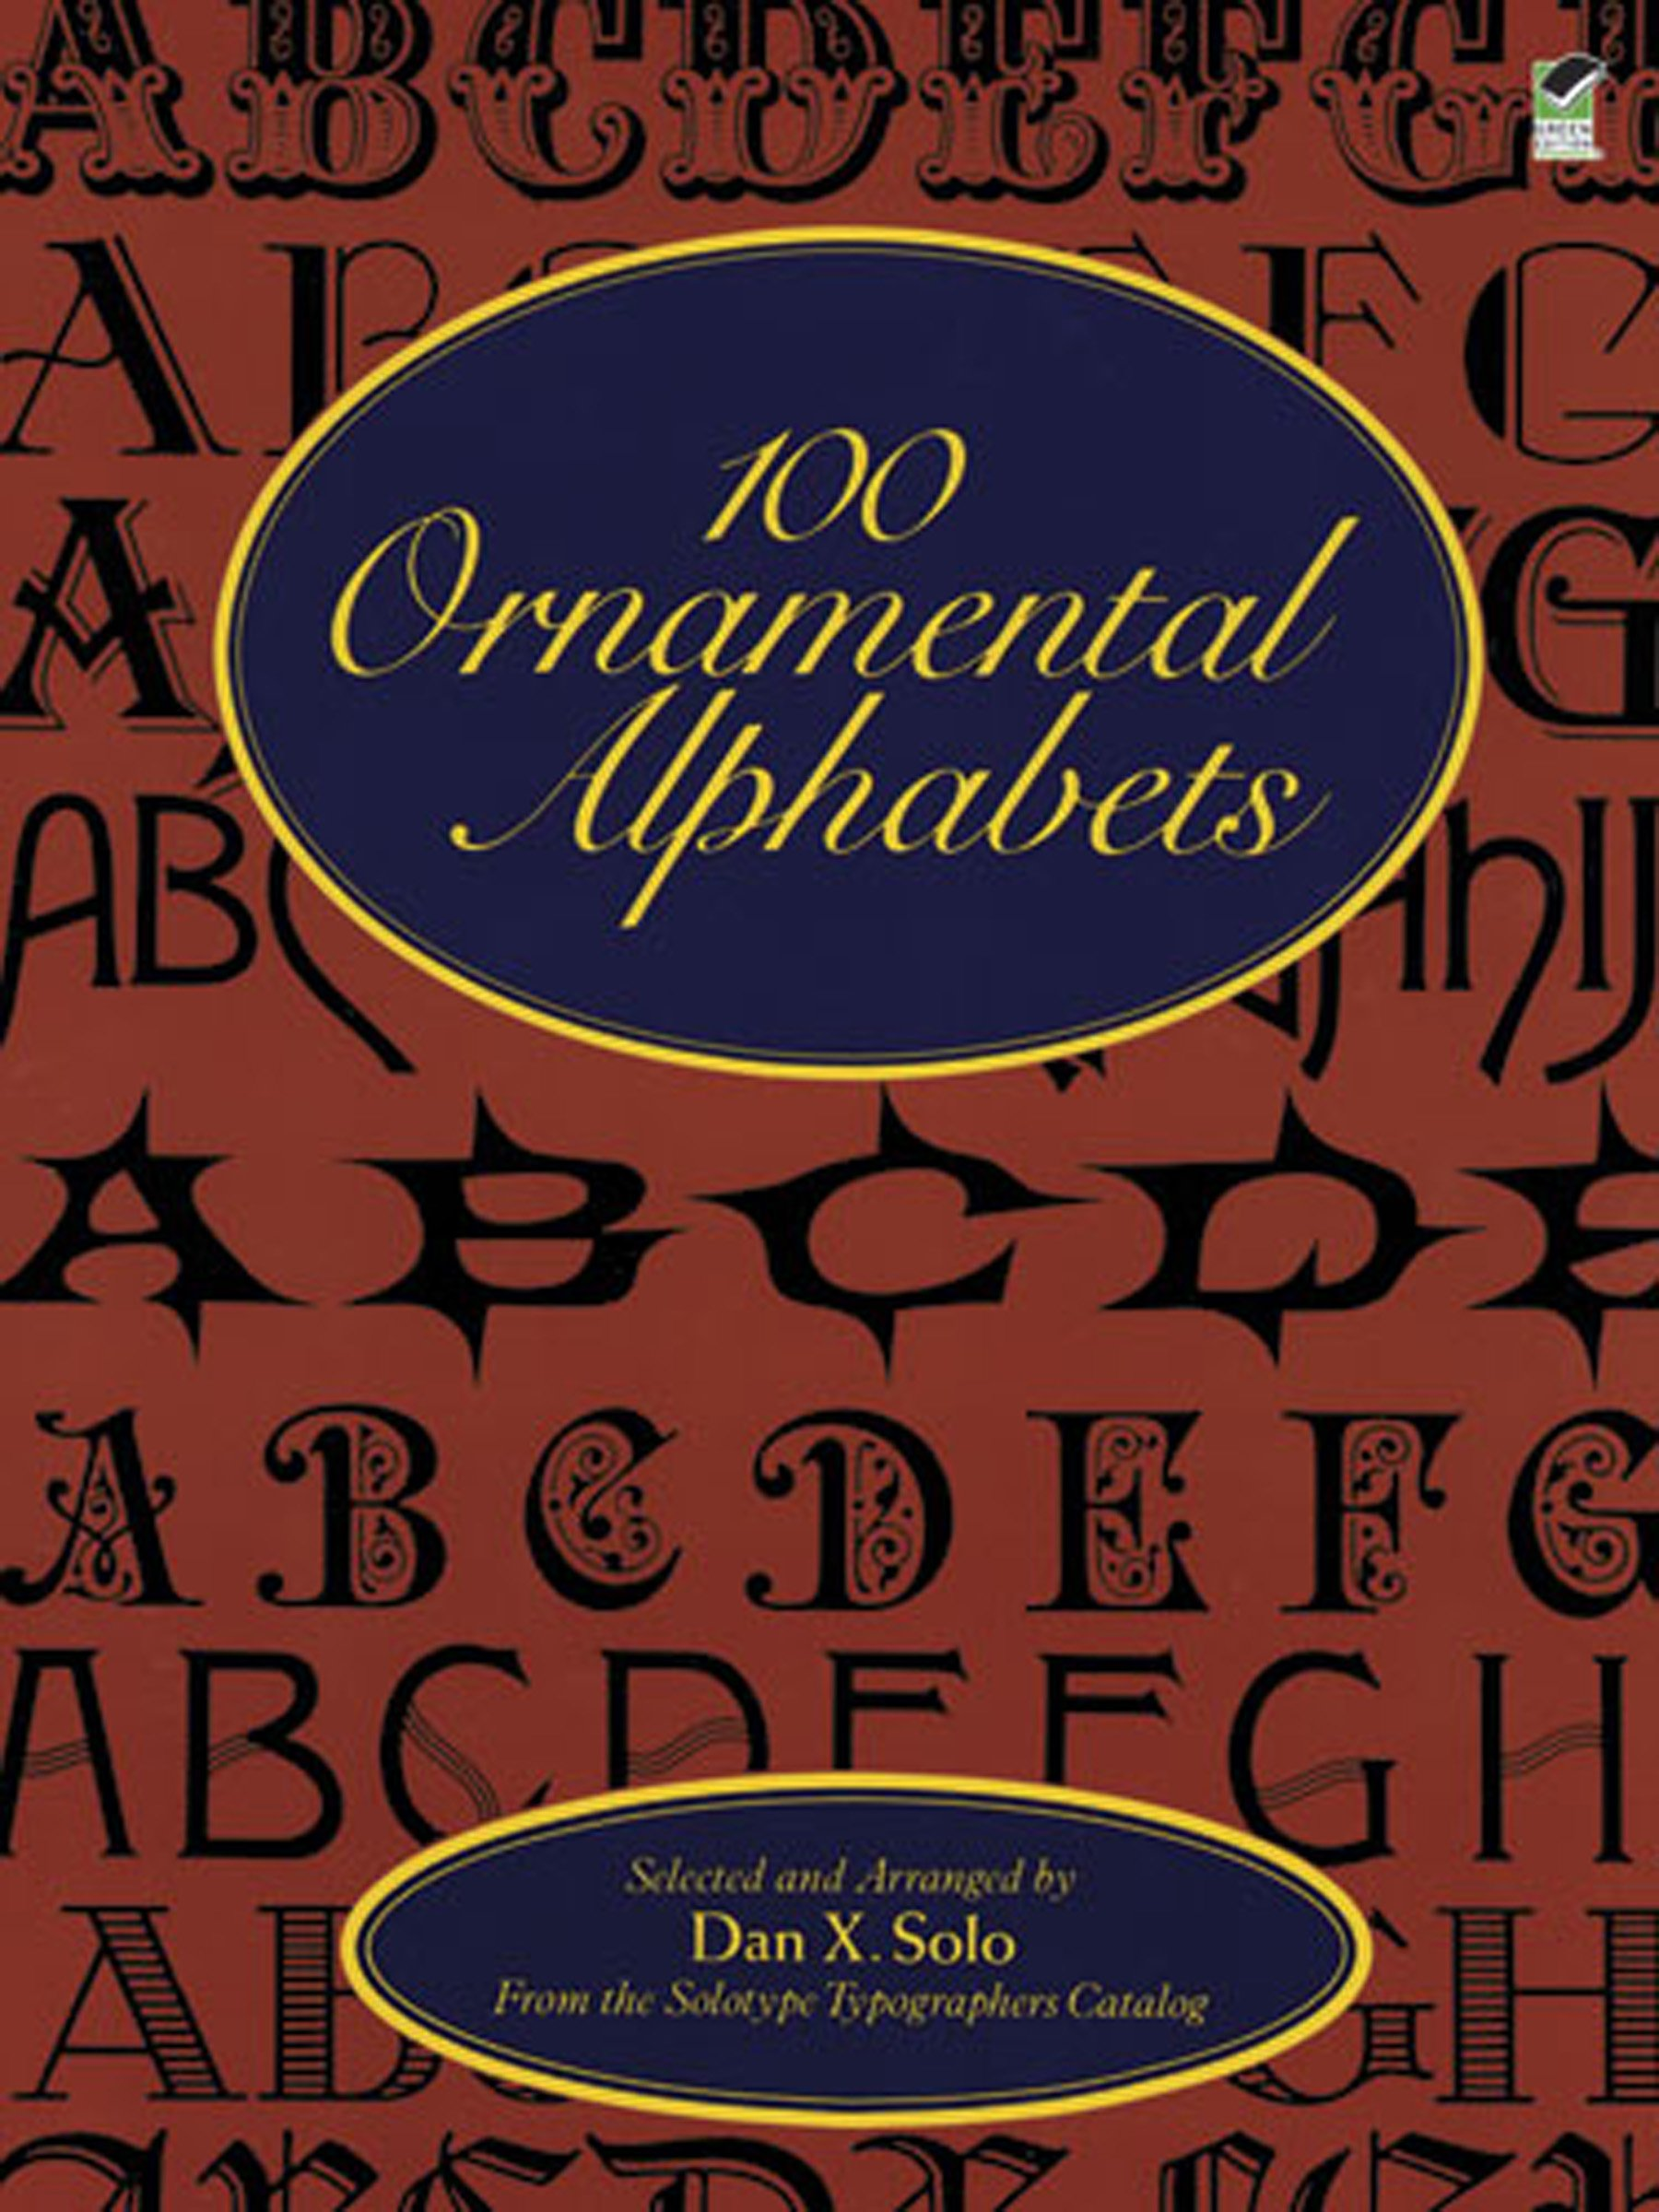 100-ornamental-alphabets-lettering-calligraphy-typography